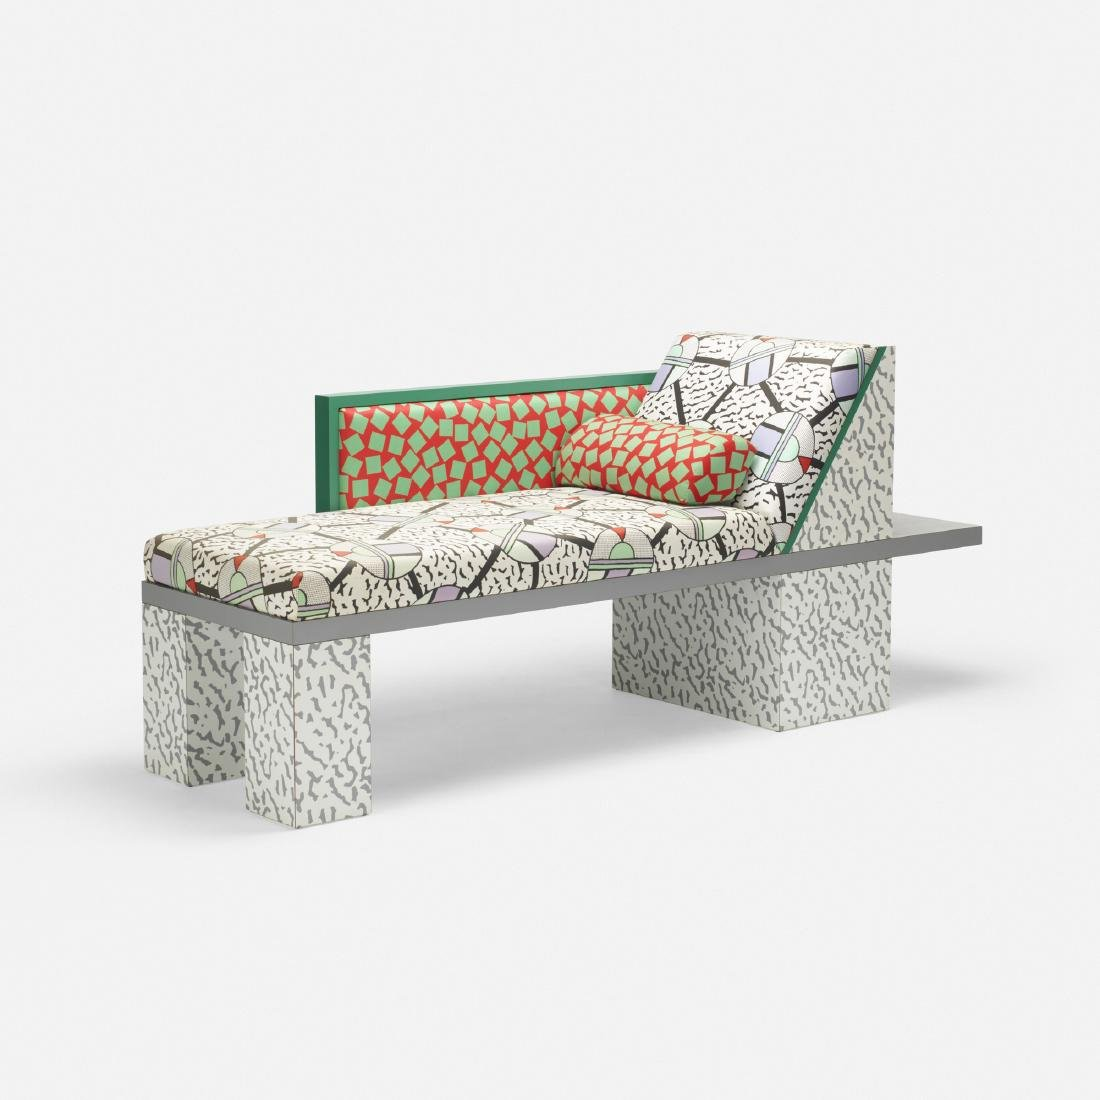 Nathalie du Pasquier, Royal daybed - 2